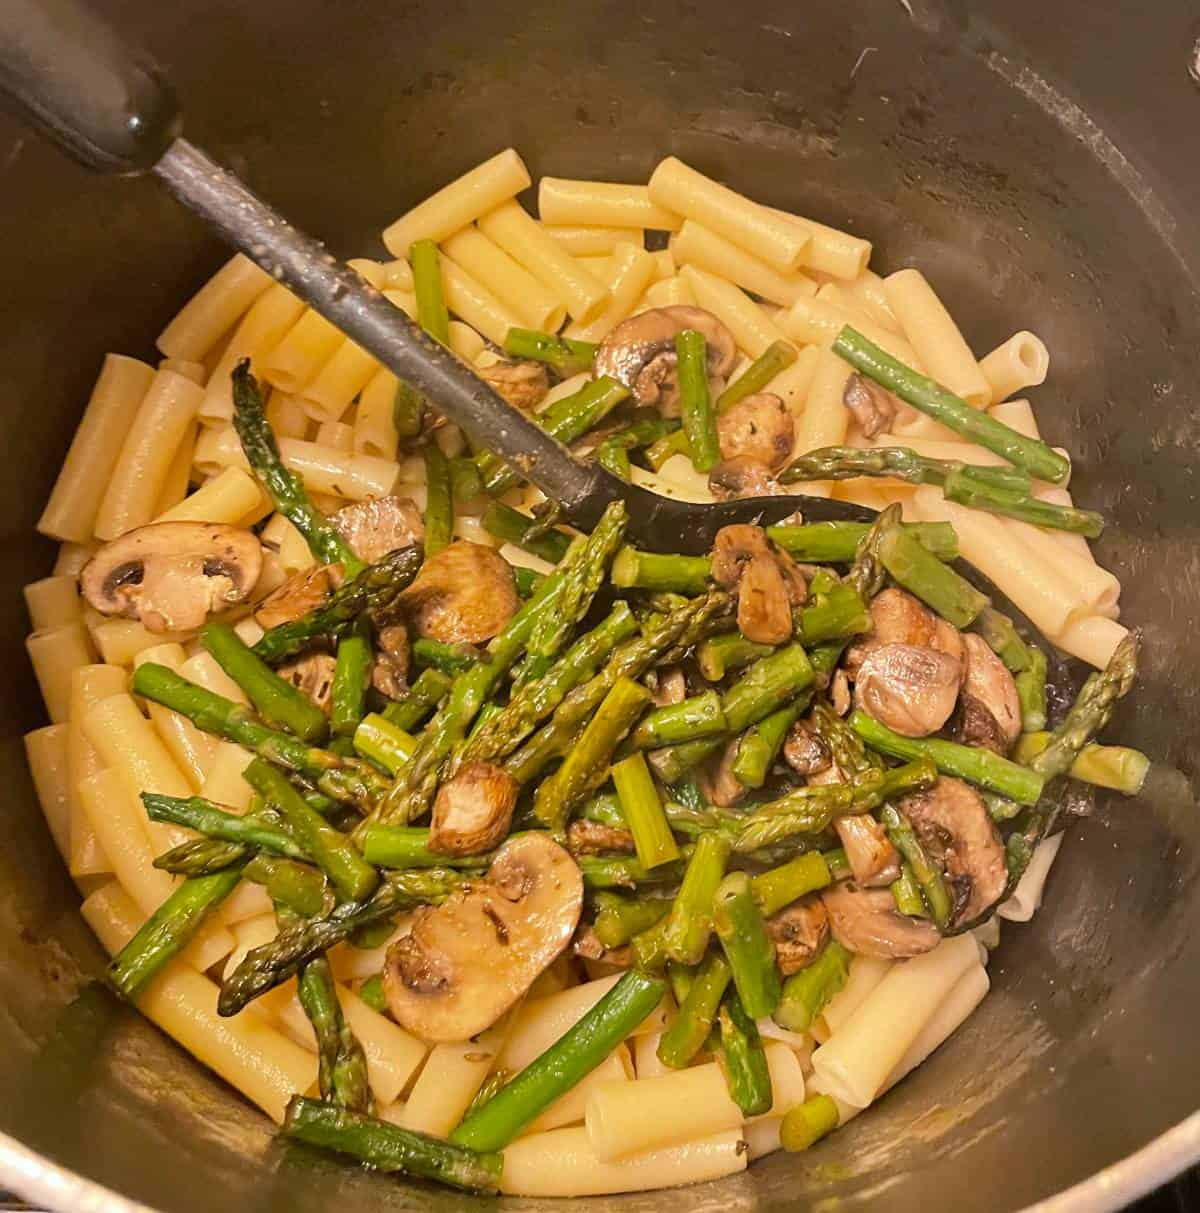 combining asparagus and mushrooms with pasta in a silver pan.